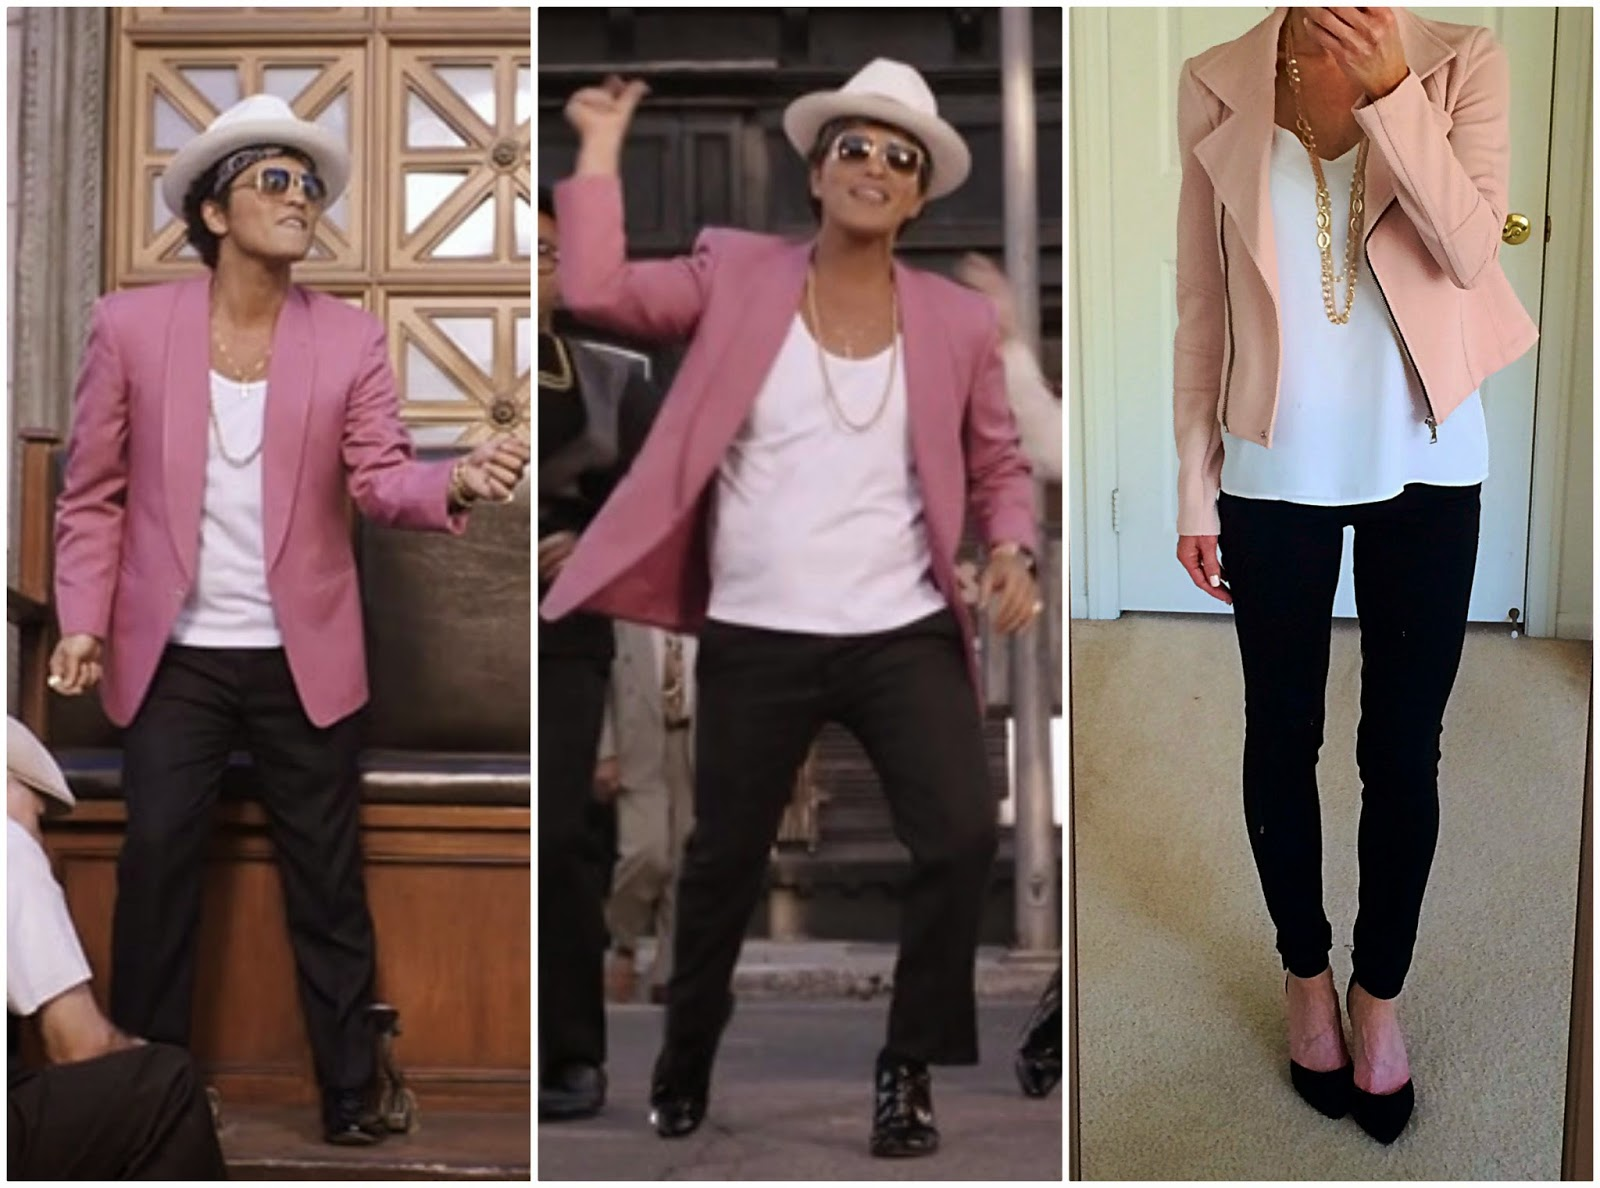 bruno mars up town